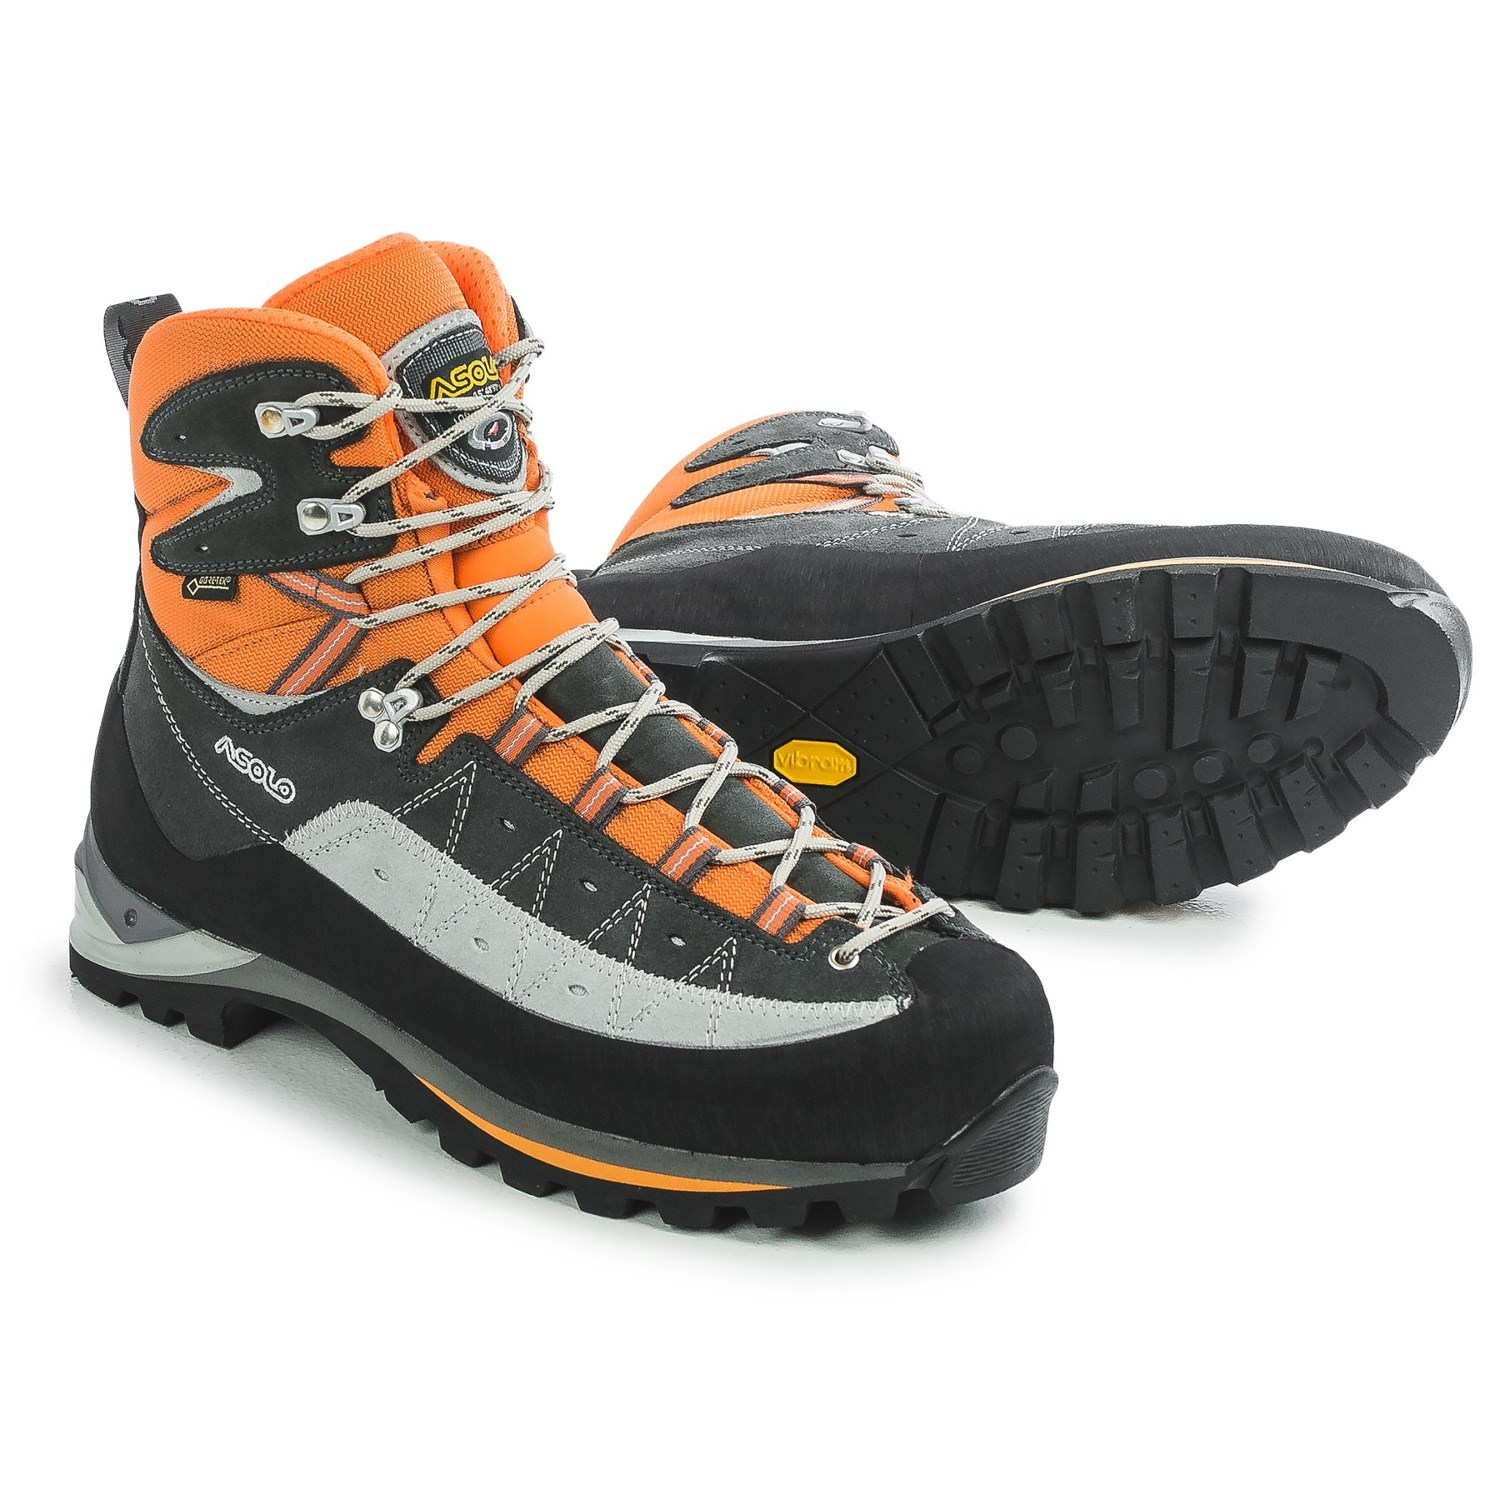 Asolo Ascender Gv Gore Tex 174 Mountaineering Boots For Men